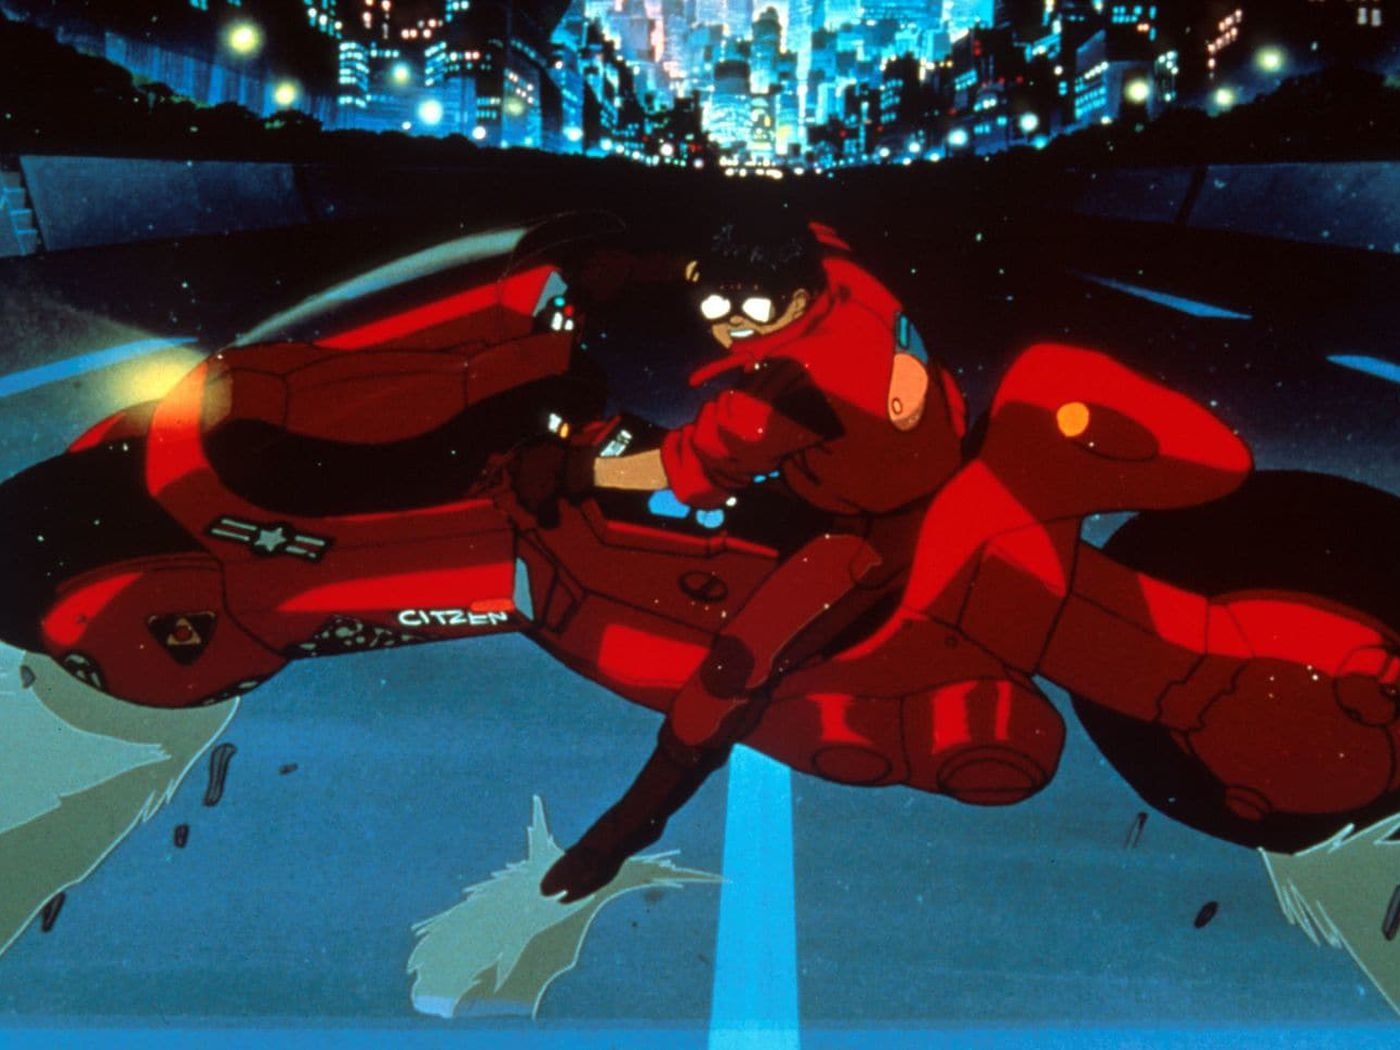 Taika Waititi S Live Action Akira Movie Gets May 2021 Release Date The Verge